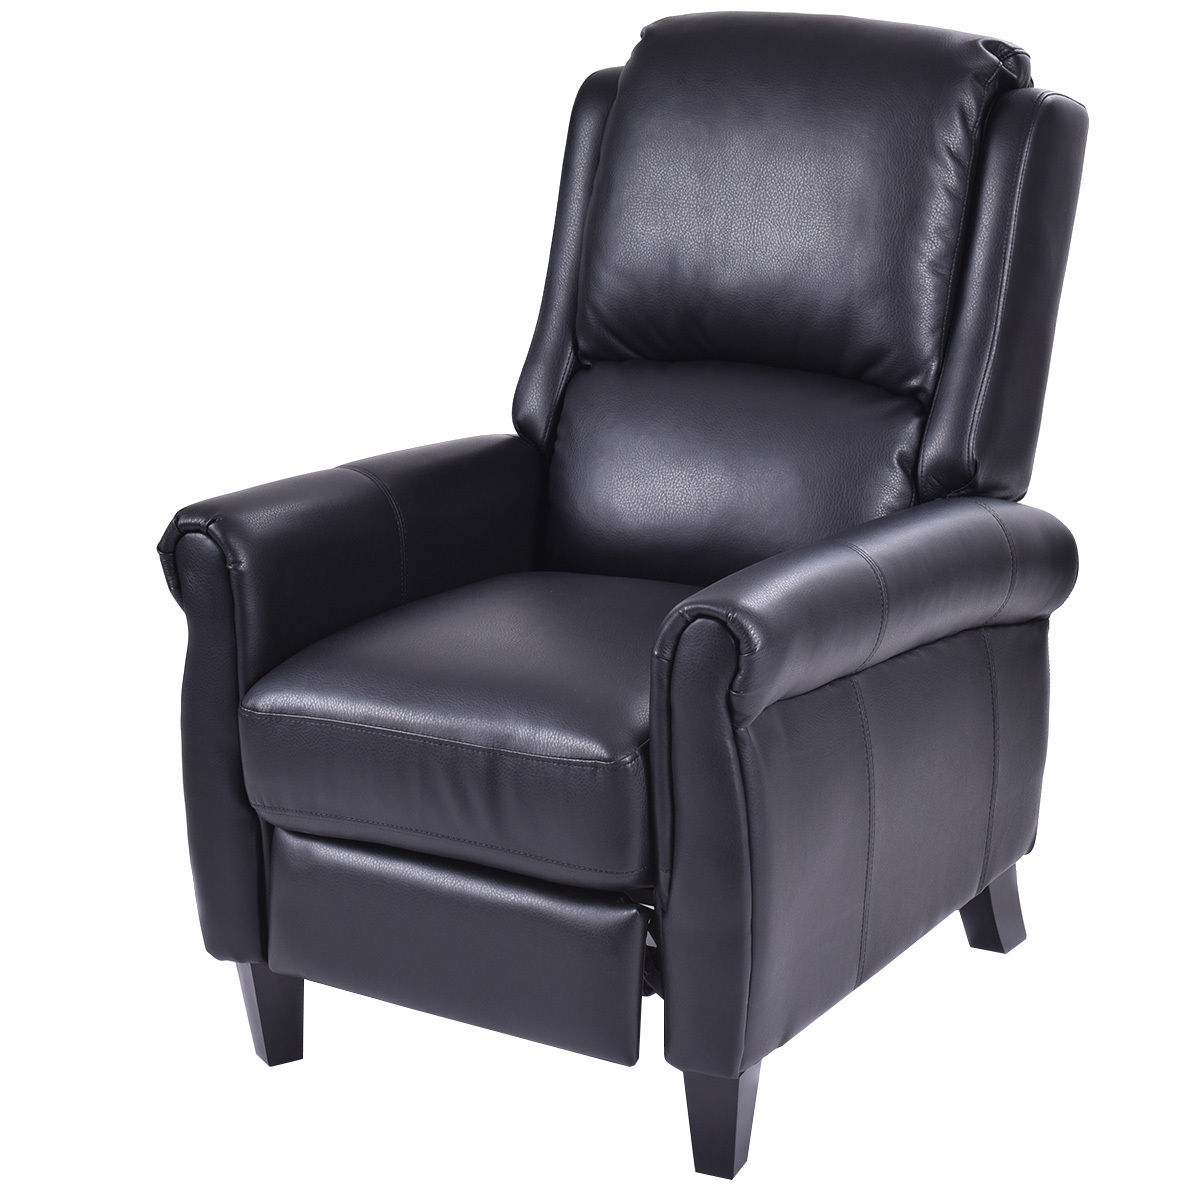 Costway Leather Recliner Accent Chair Push Back Living Room Home Furniture w  Leg Rests by Costway